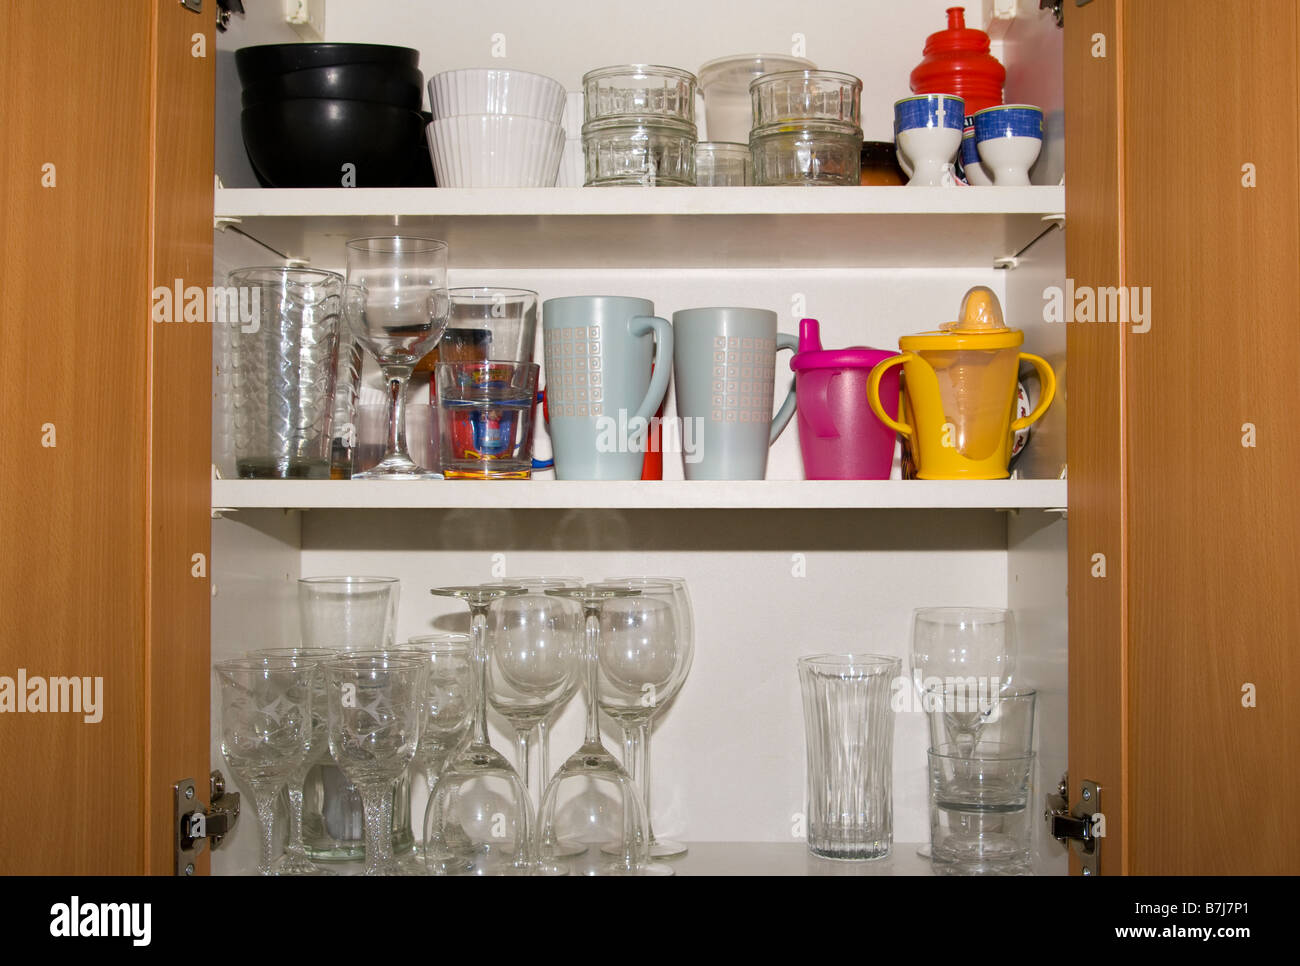 Genial Open Kitchen Cupboard Cupboards Containing Glasses And Crockery